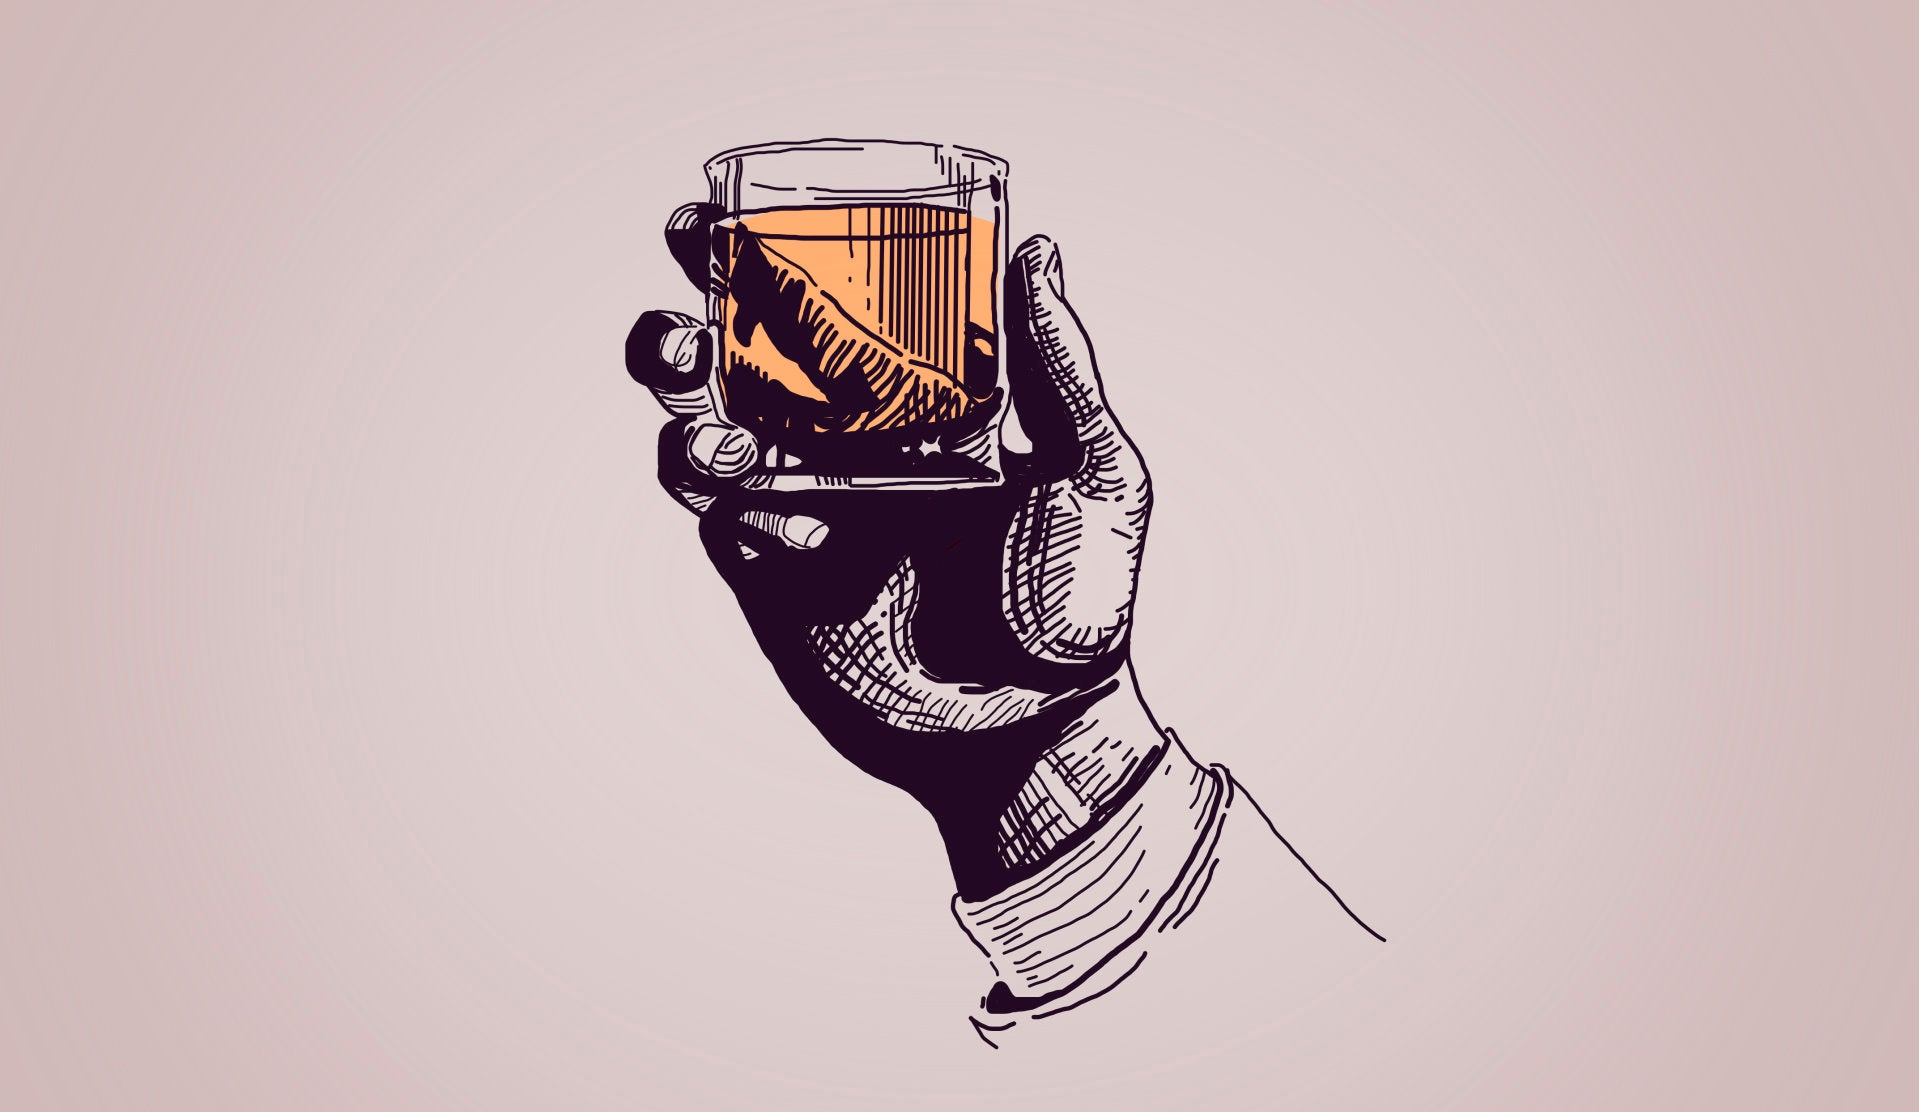 Whiskey Etiquette: How to Drink Whiskey Properly